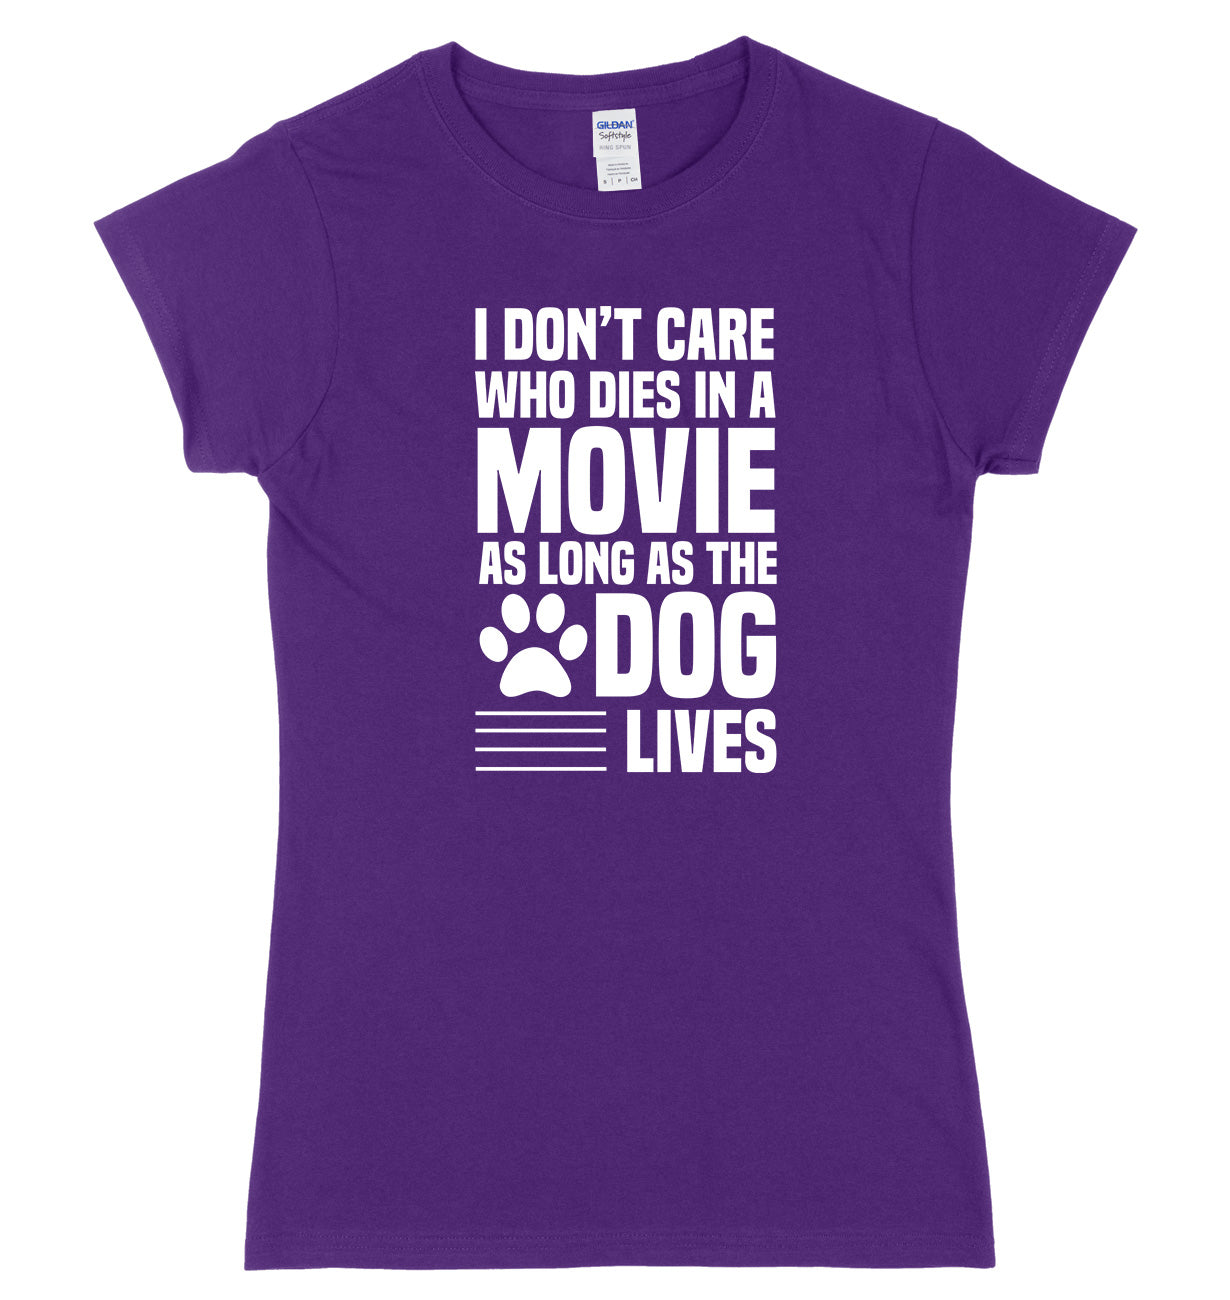 I Don't Care Who Dies In A Movie As Long As The Dog Lives Womens Ladies Slim Fit T-Shirt